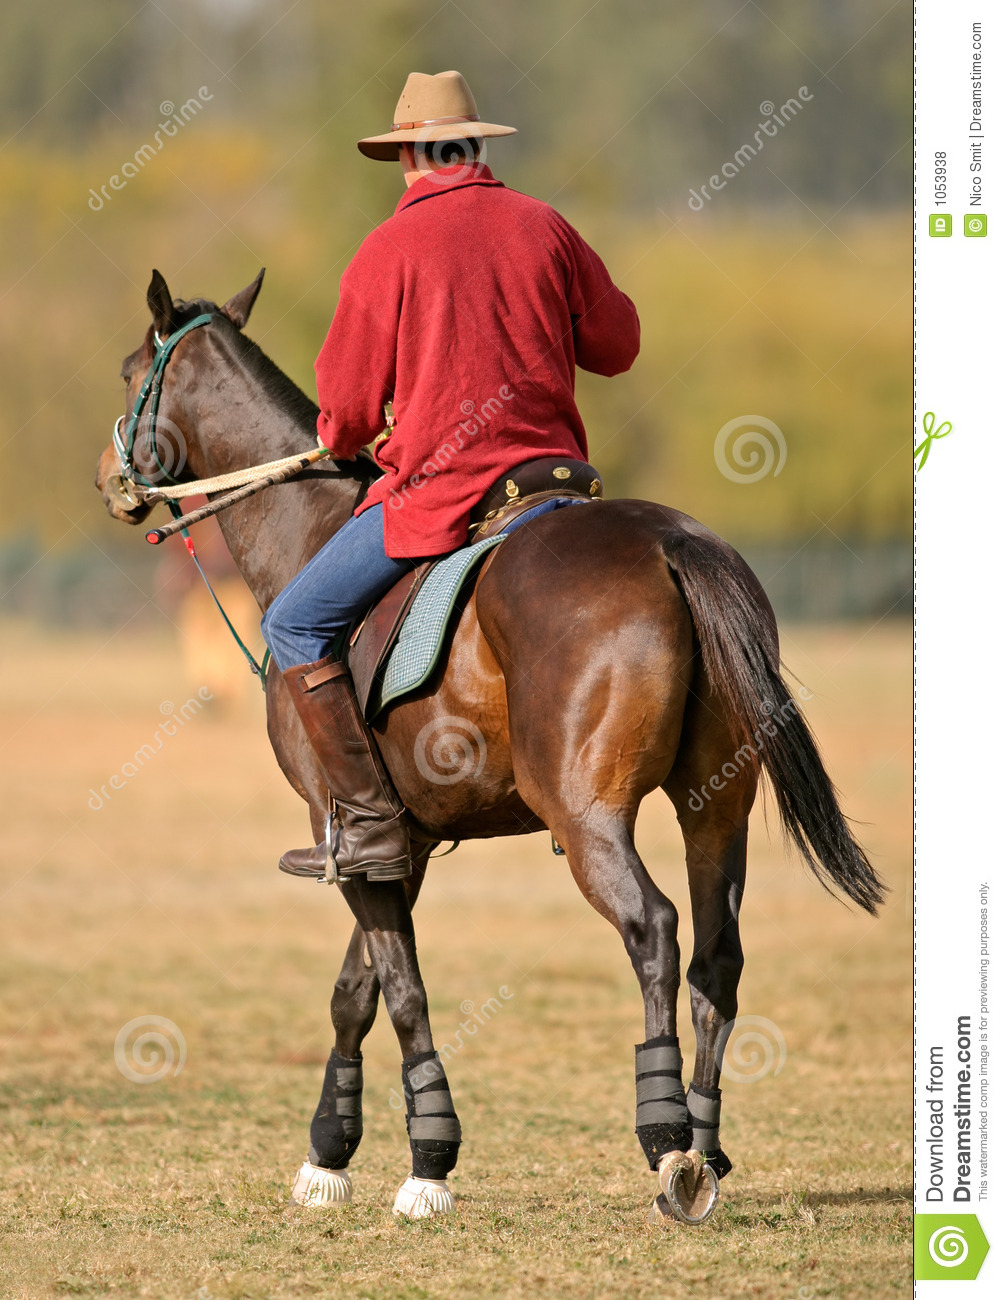 Horse And Rider Royalty Free Stock Photos - Image: 1053938